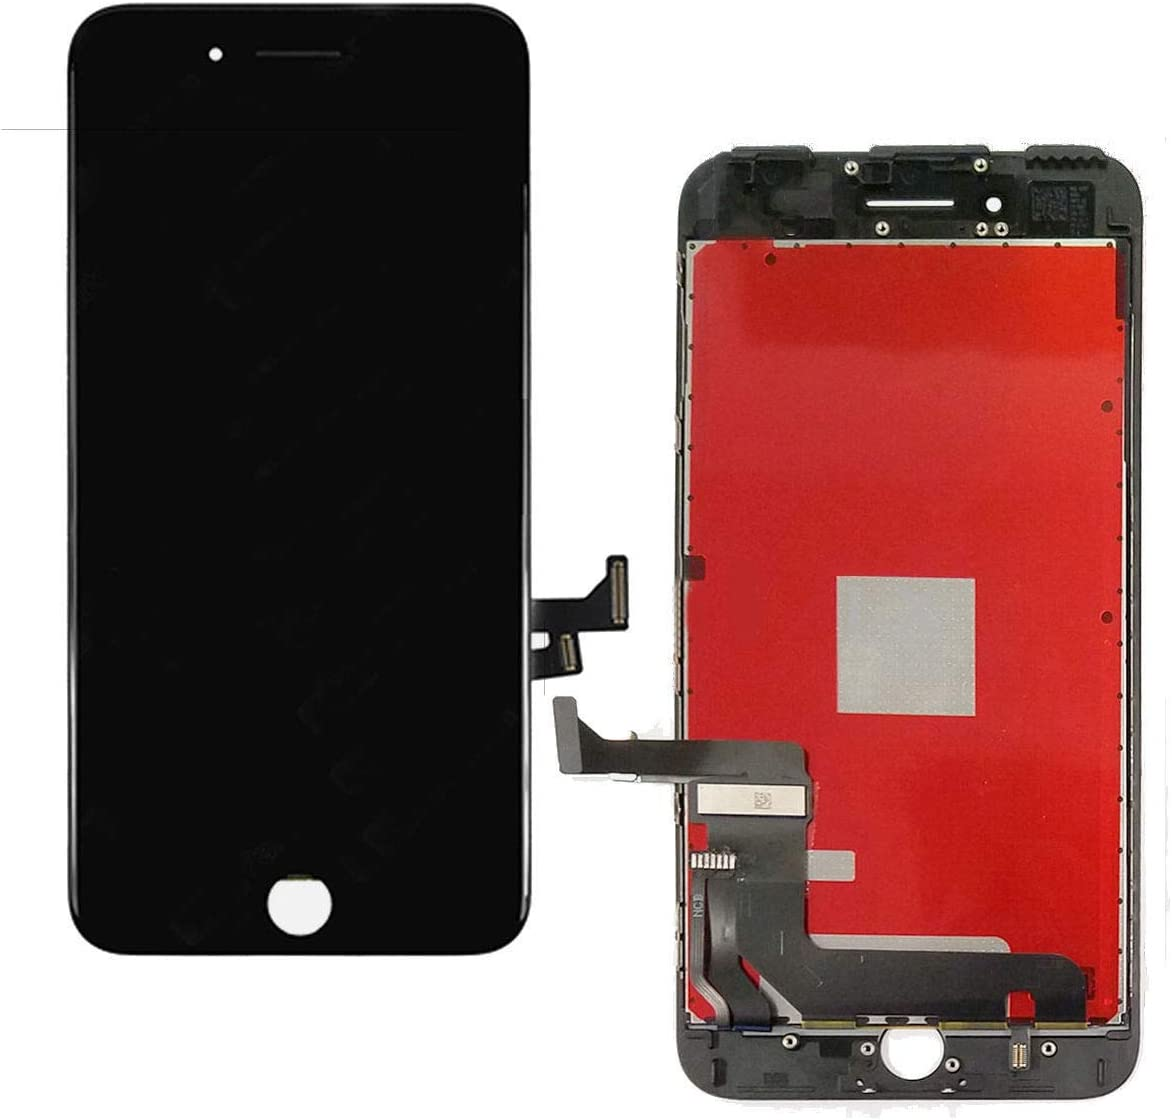 ZTR Replace LCD Glass Screen Fits iPhone 7 Plus 5.5 inch Digitizer Assembly Full Complete Frame Set Display Replacement (Black)